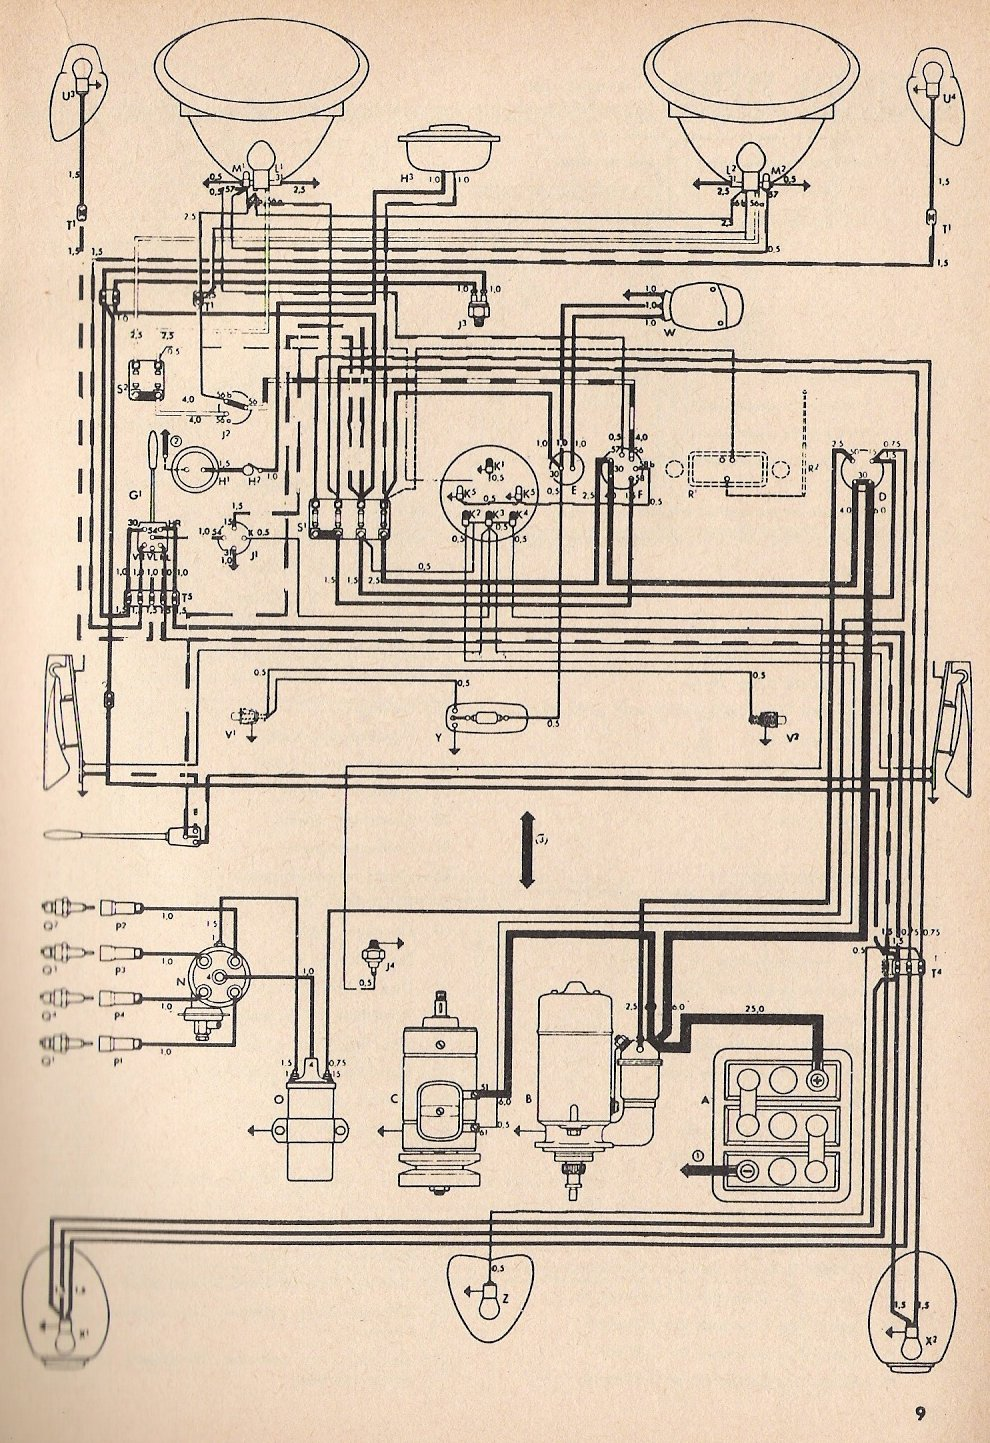 Bug Toaug on 1979 Dodge Alternator Wiring Diagram